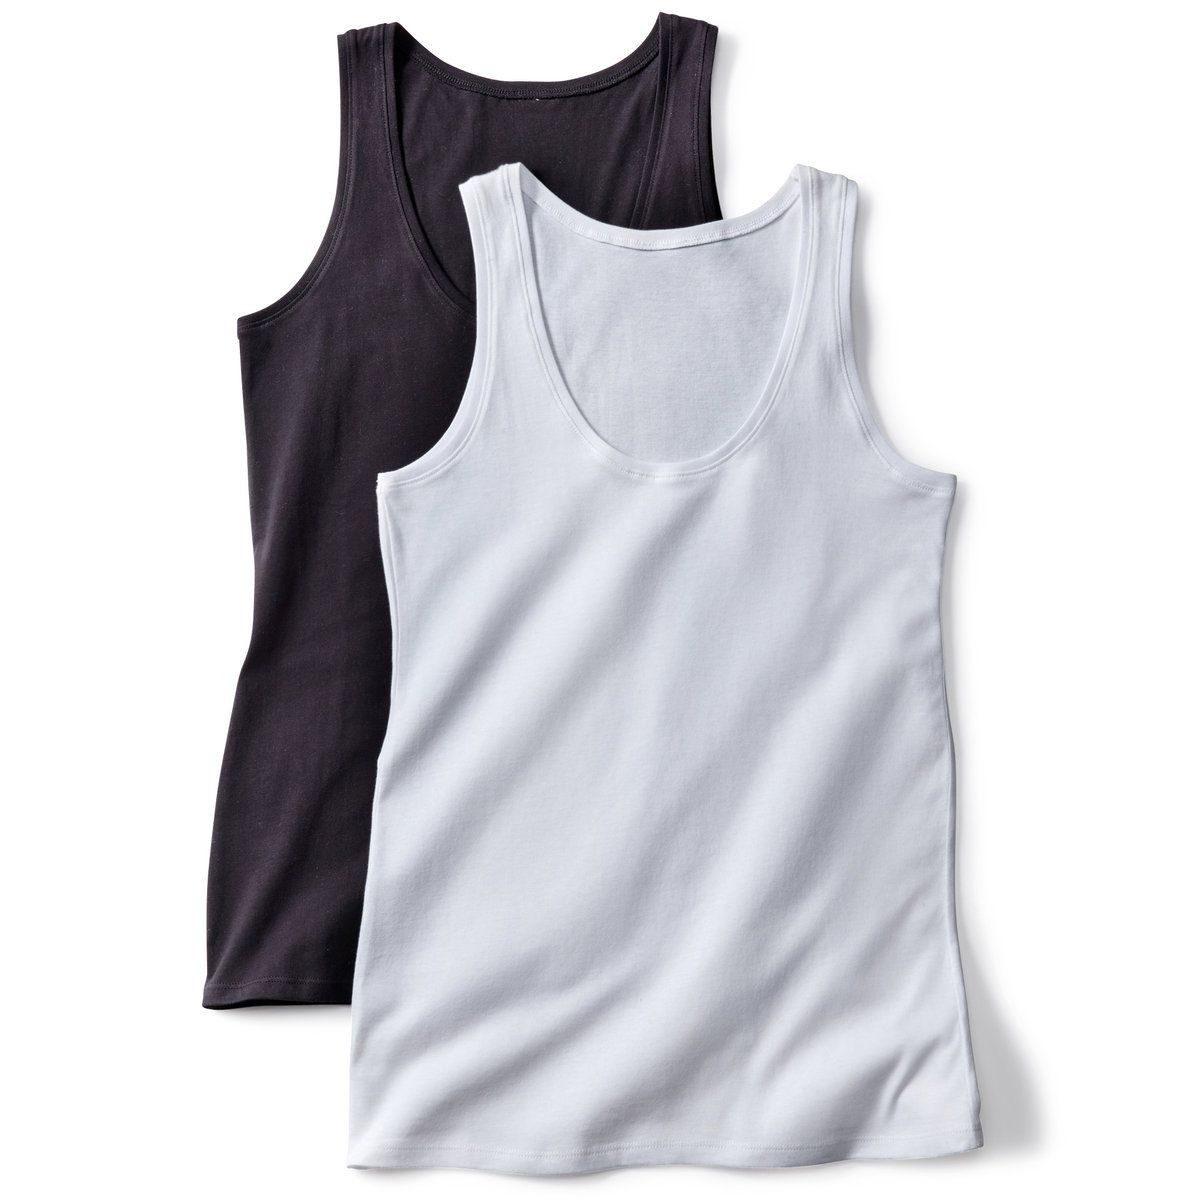 White And Black Pack Of 2 Tank Tops - La Redoute